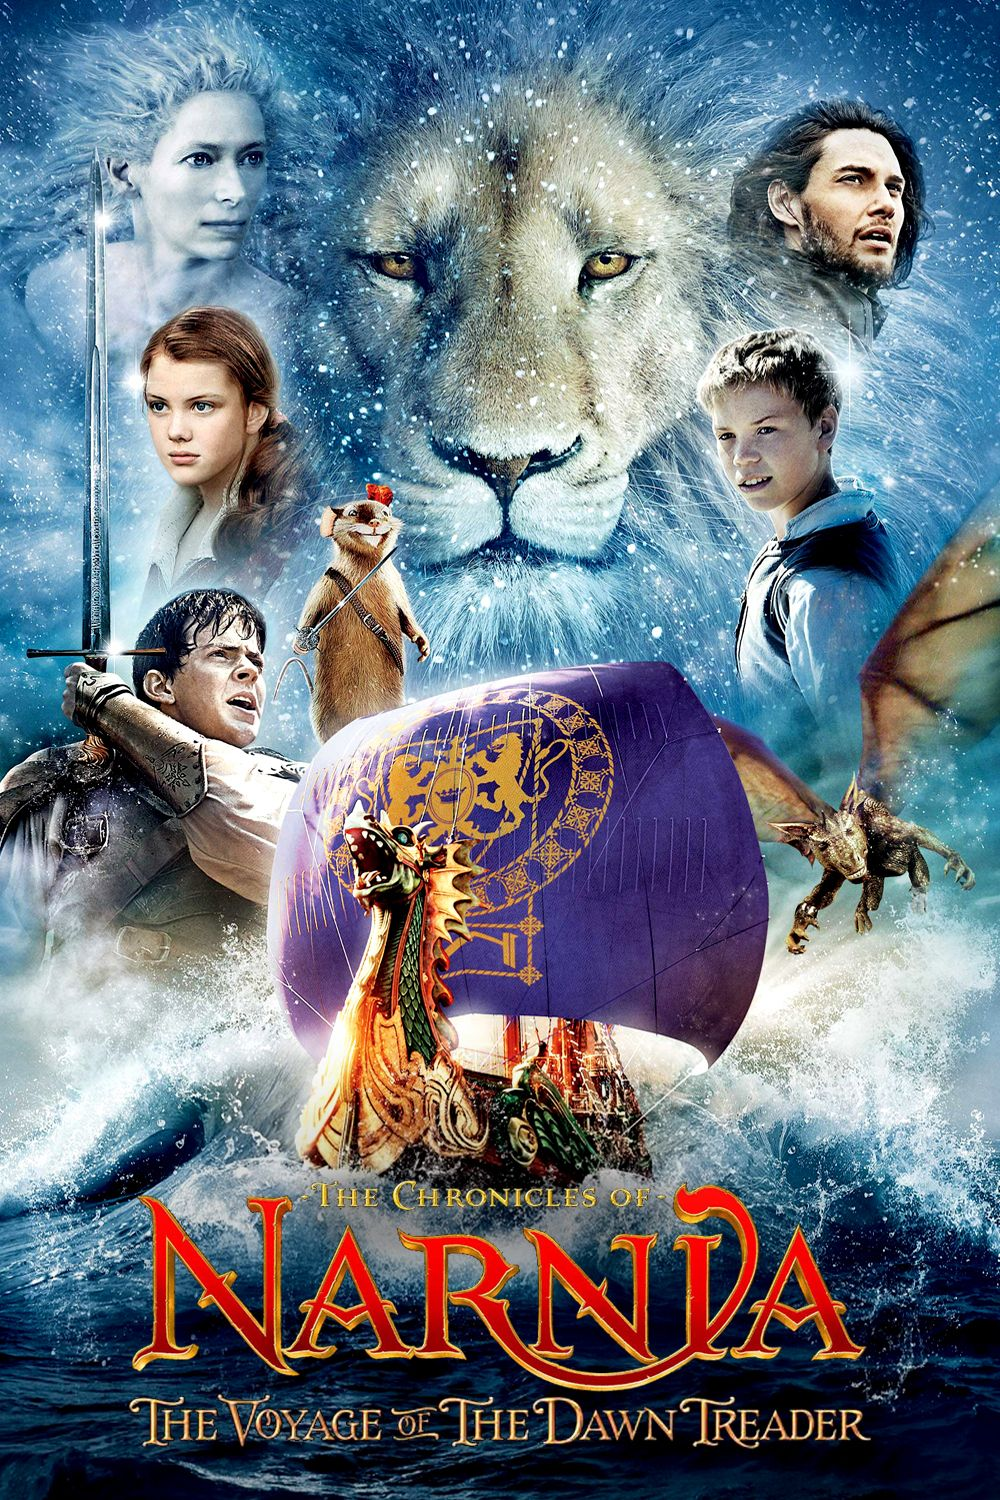 The Chronicles Of Narnia The Voyage Of The Dawn Treader 2010 Narnia Movies Narnia Fantasy Movies